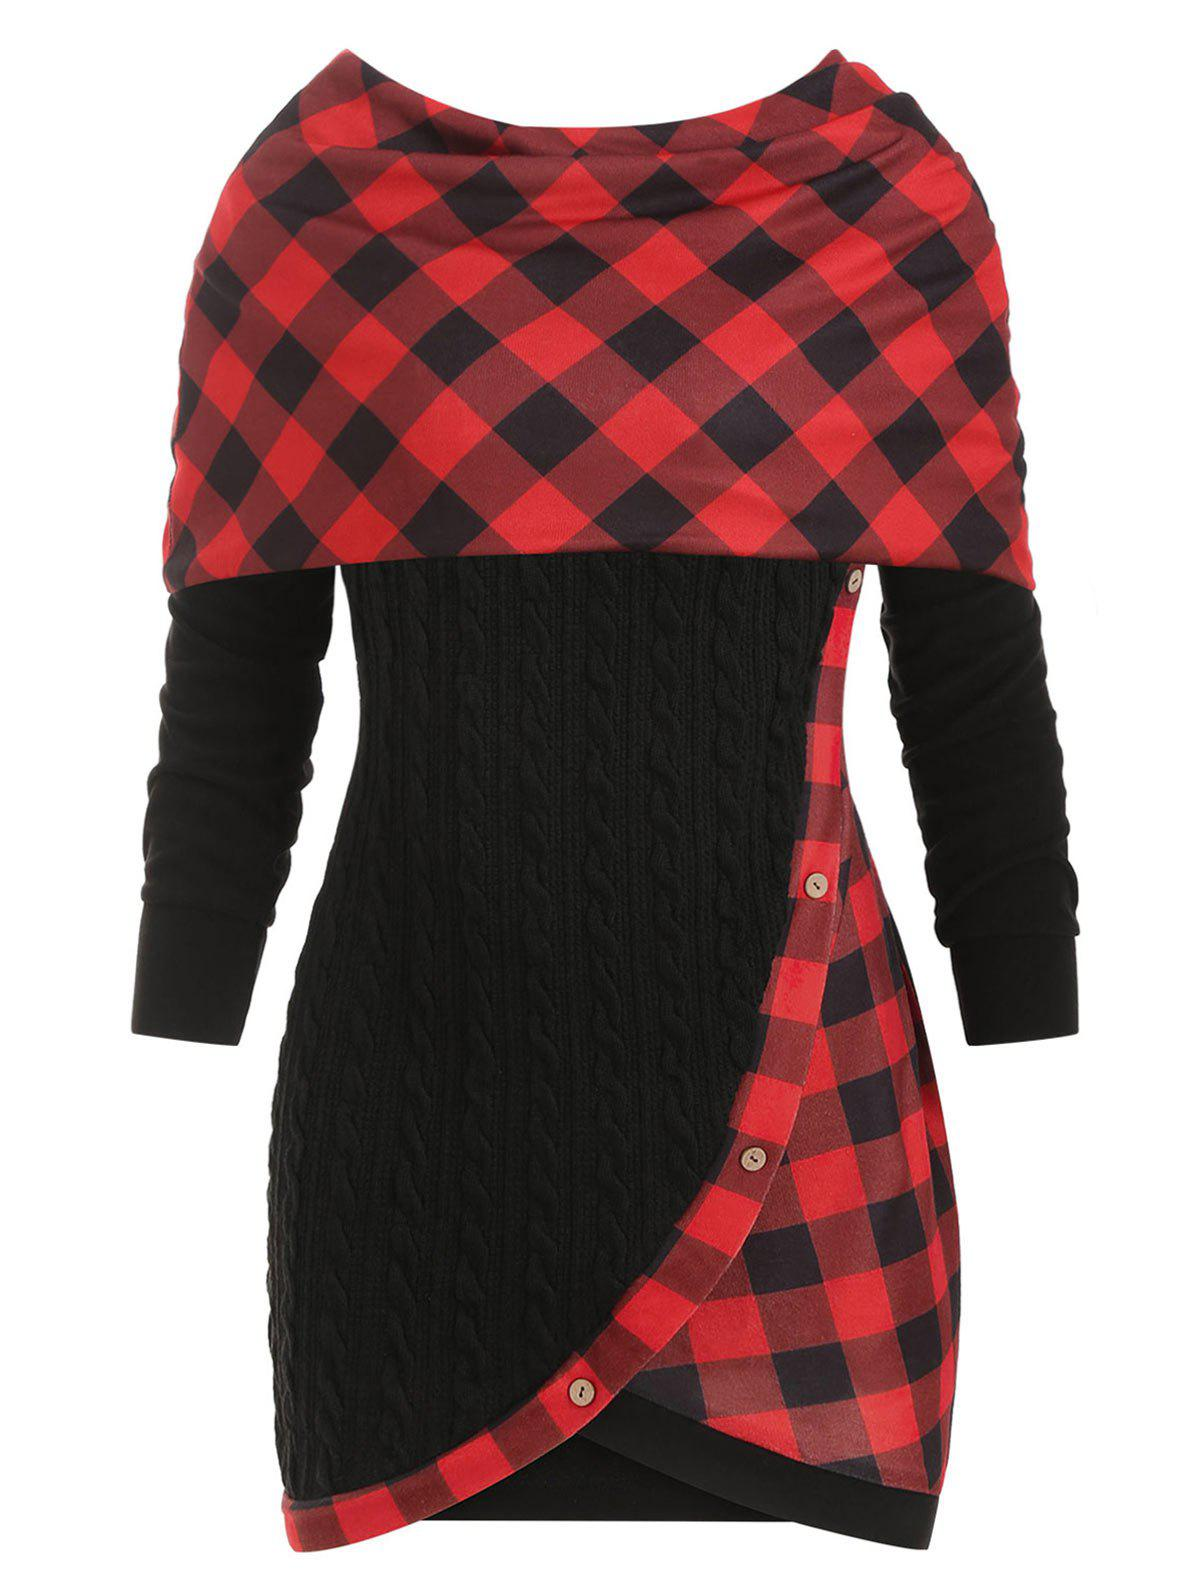 Plus Size Convertible Plaid Cable Knit Sweater - BLACK 4X